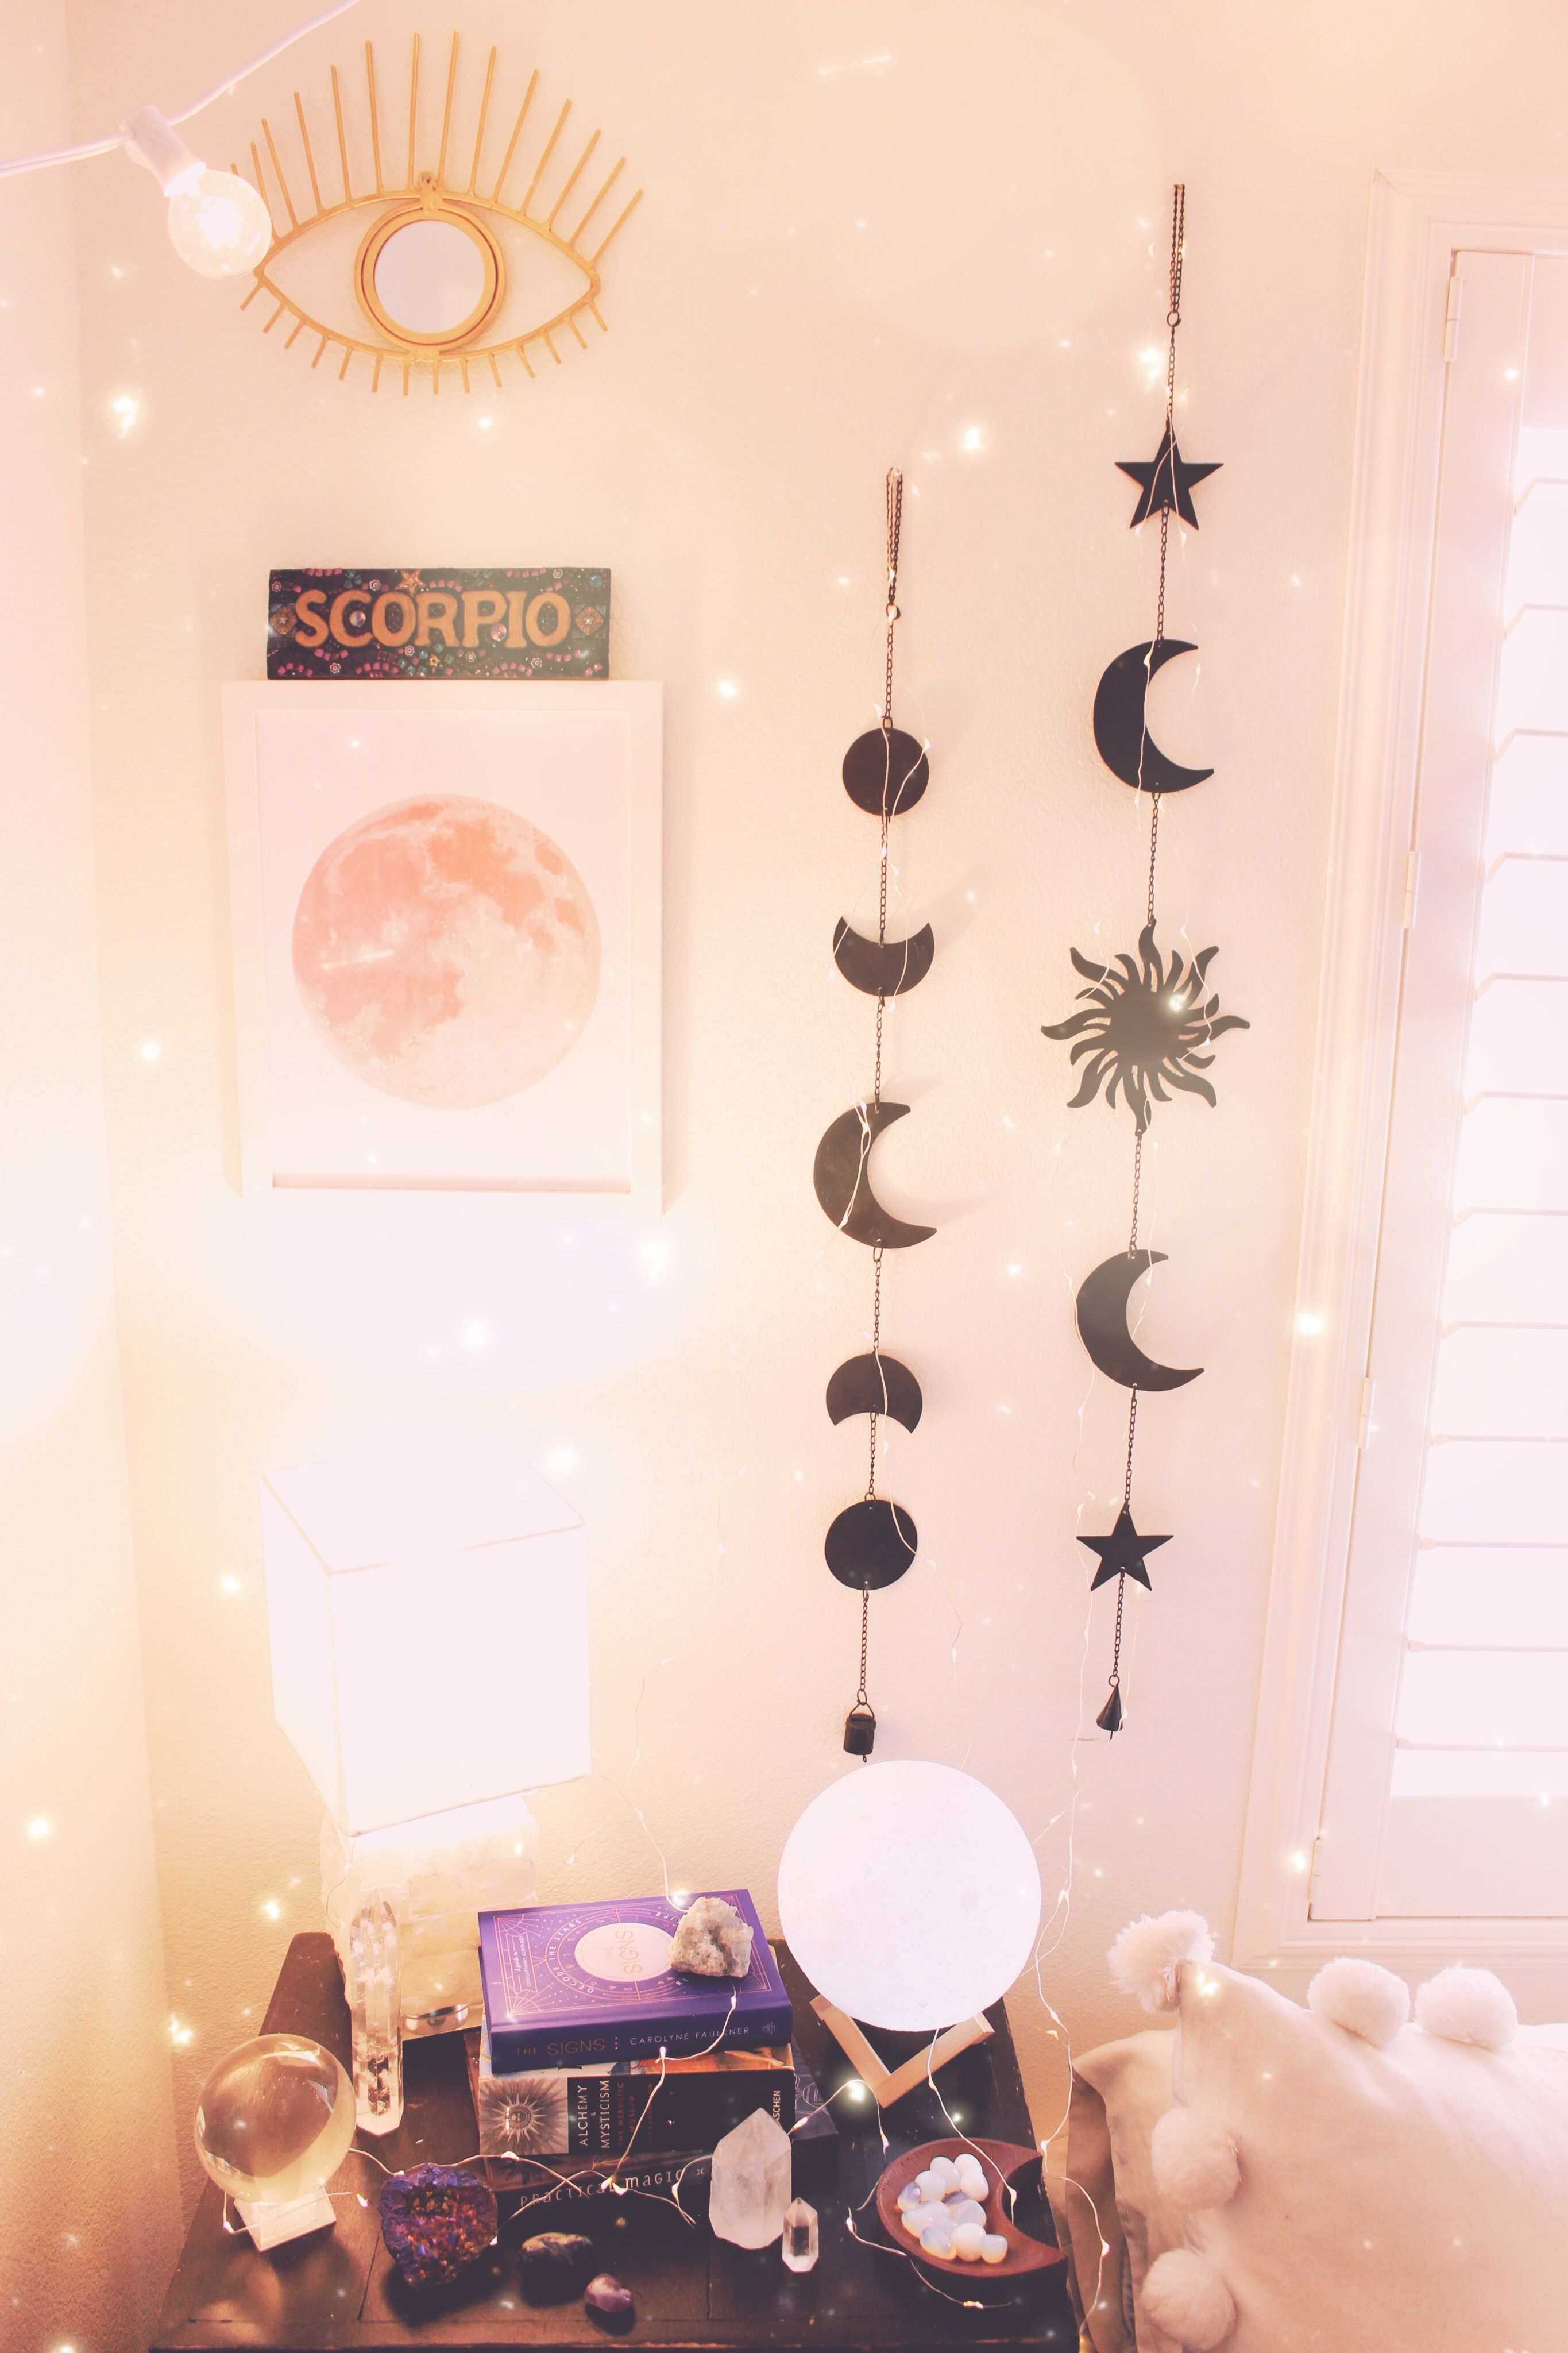 Moon Phases Wall Hanging Decor Hanging Wall Decor Bohemian Bedroom Design Boho Chic Interior Design